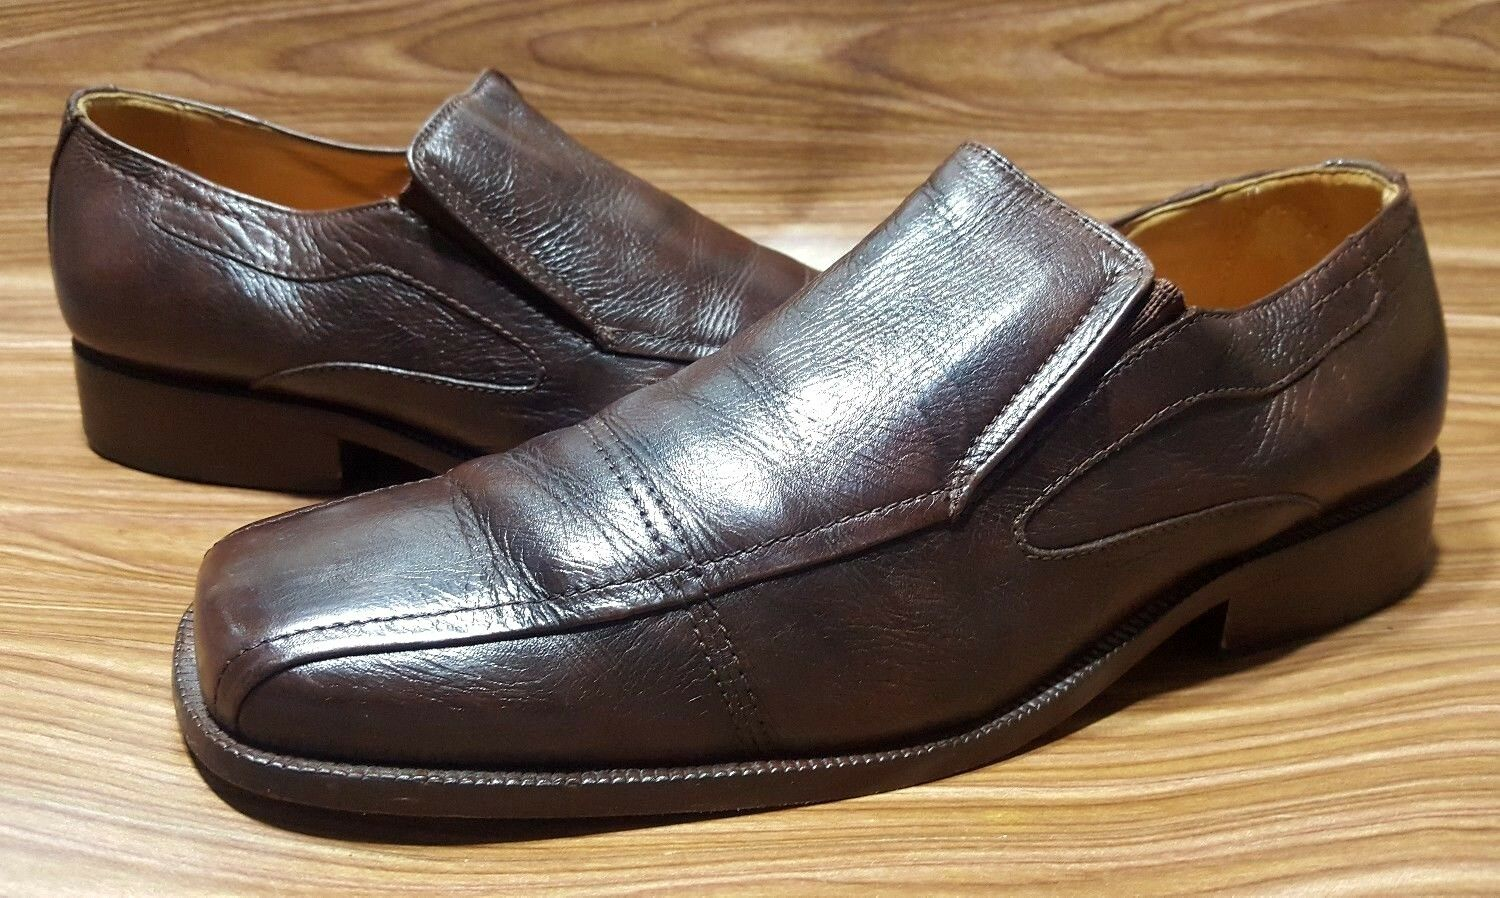 BOSTONIAN MENS LOAFERS SLIP ON BROWN LEATHER DRESS SHOES 9 D